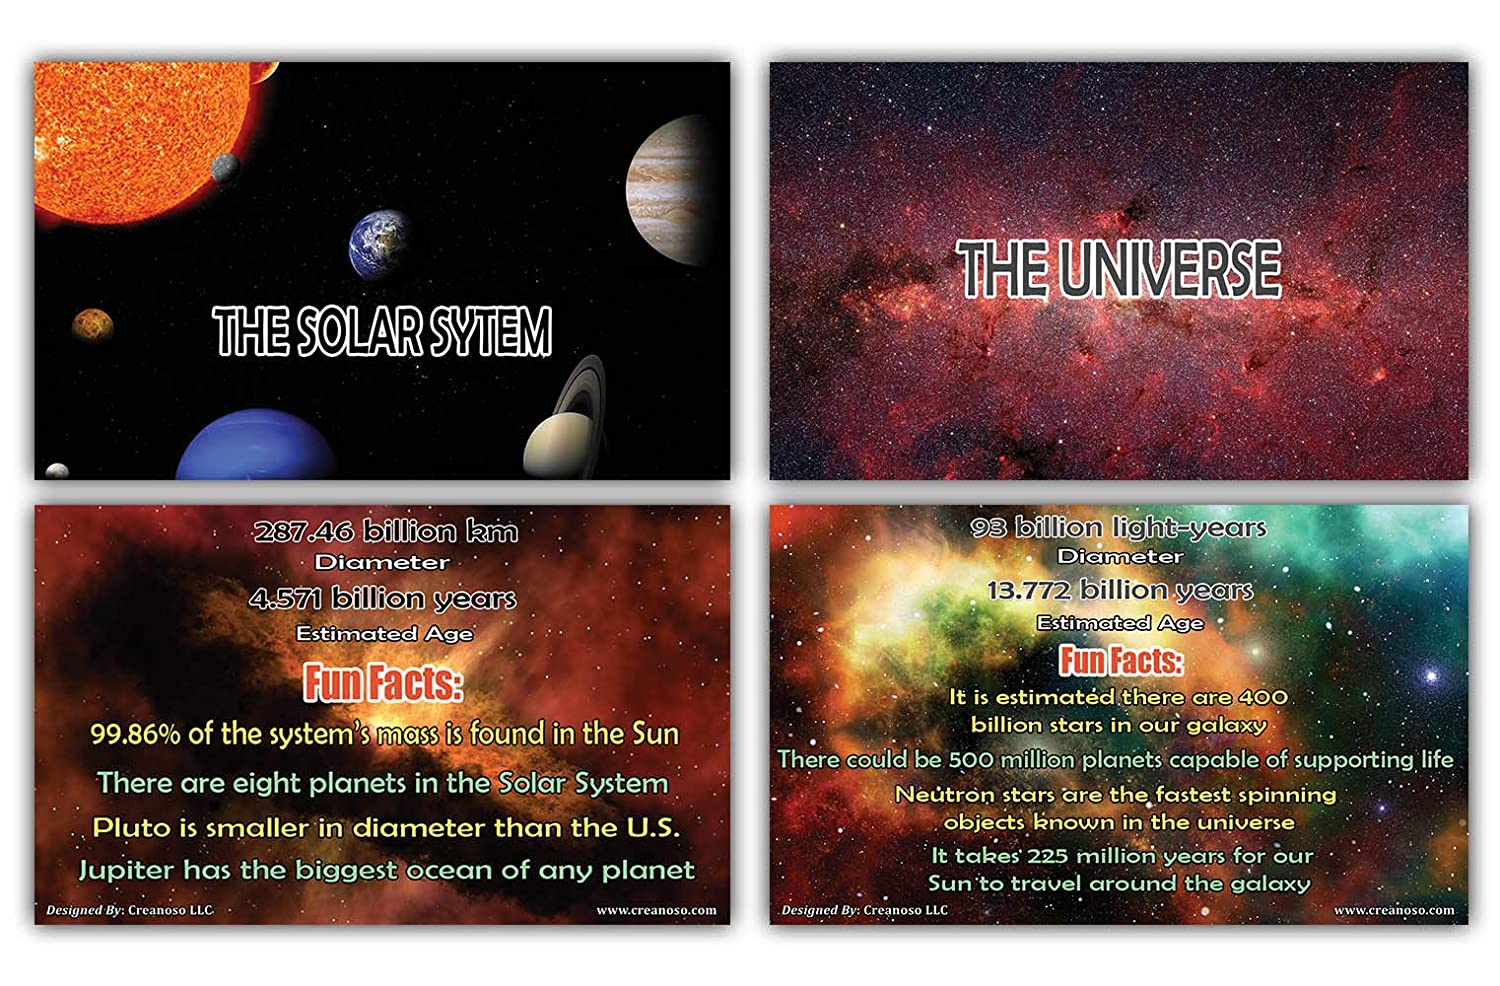 Creanoso Facts About Planet and Universe Flash Cards Kids Unique Professor Gifts Teens Men /& Women Assorted Informational Learning Cards Gift Set for Students 24-Pack